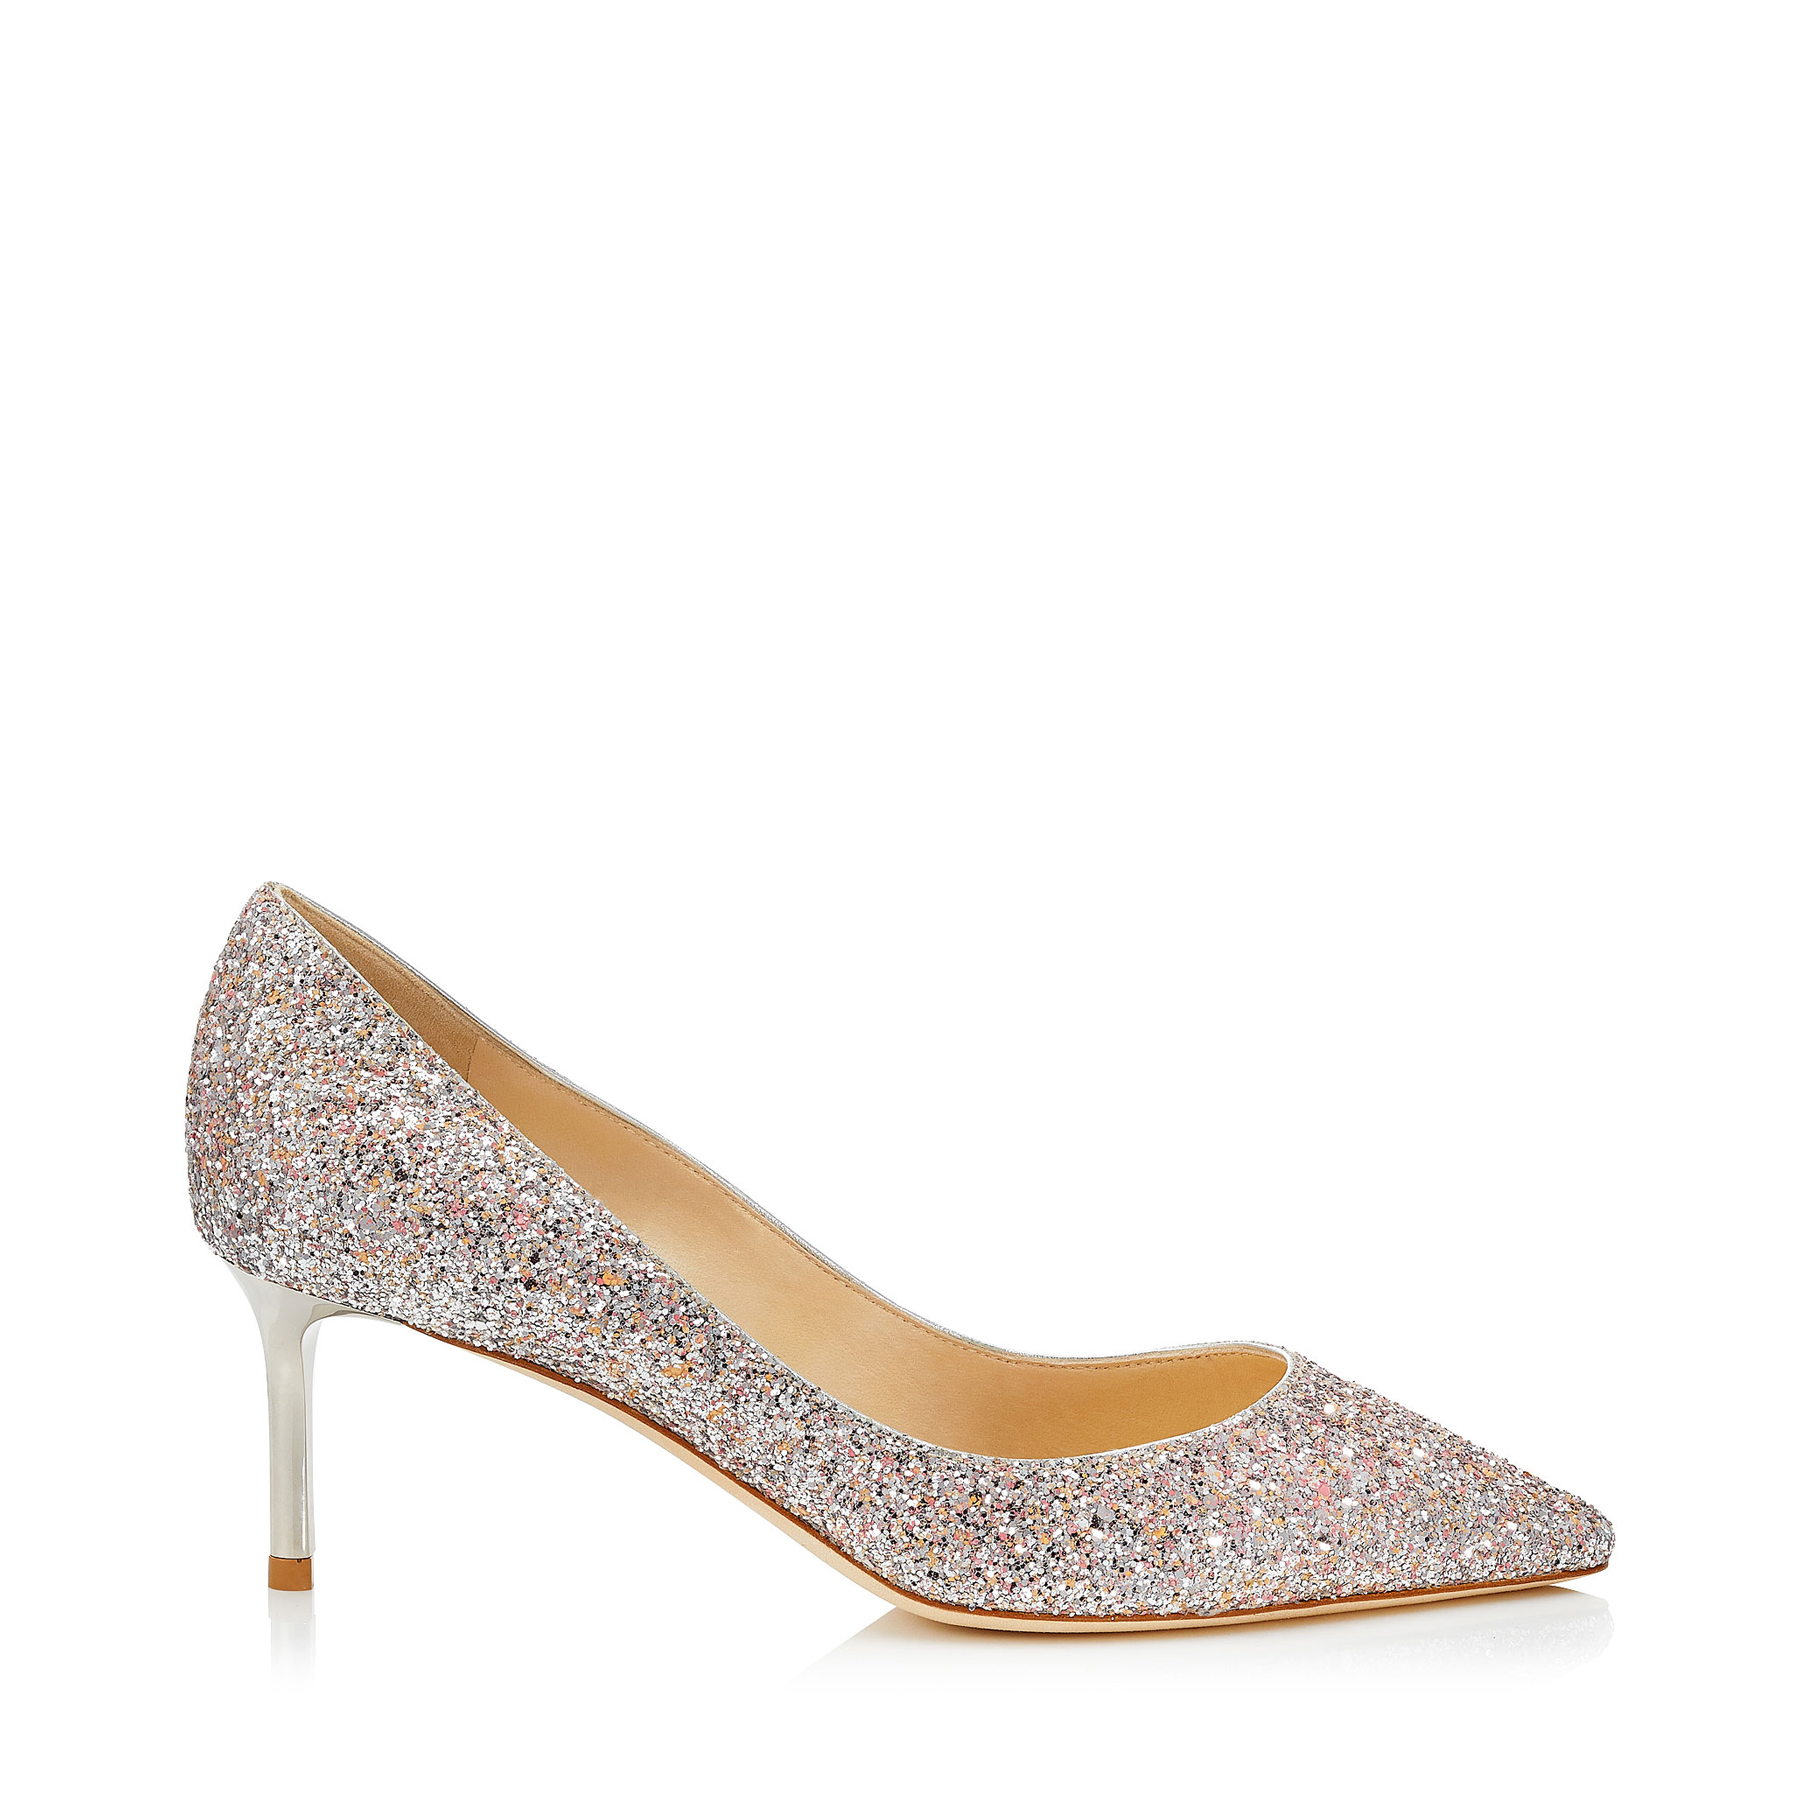 ROMY 60 Viola Mix Speckled Glitter Pointy Toe Pumps by Jimmy Choo